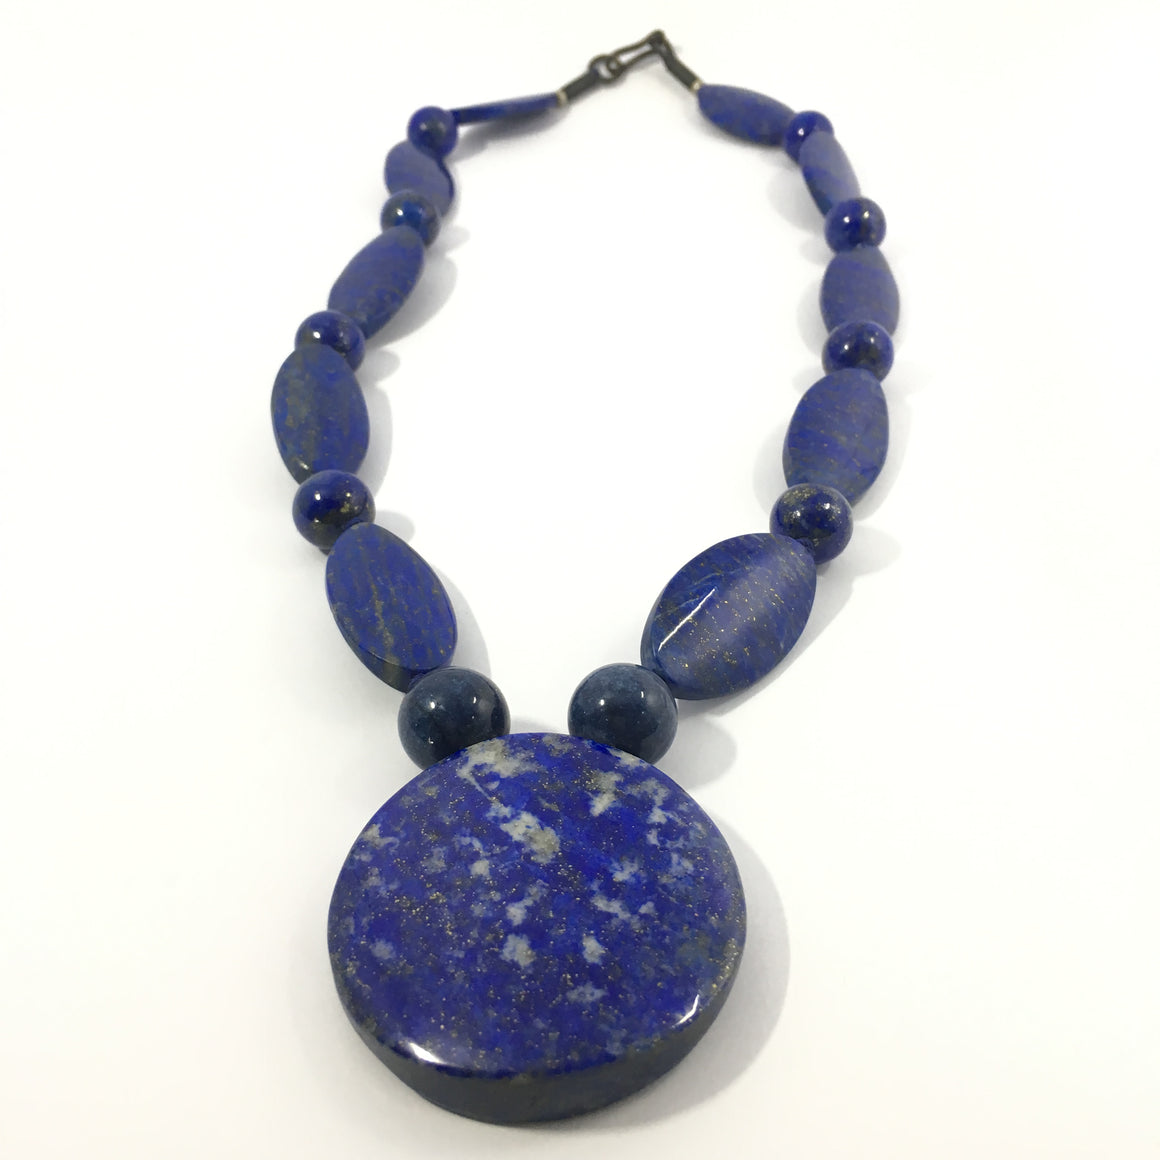 Lapis Lazuli Necklace - Lapis  Necklace Sleek Designed - 560.0 ct